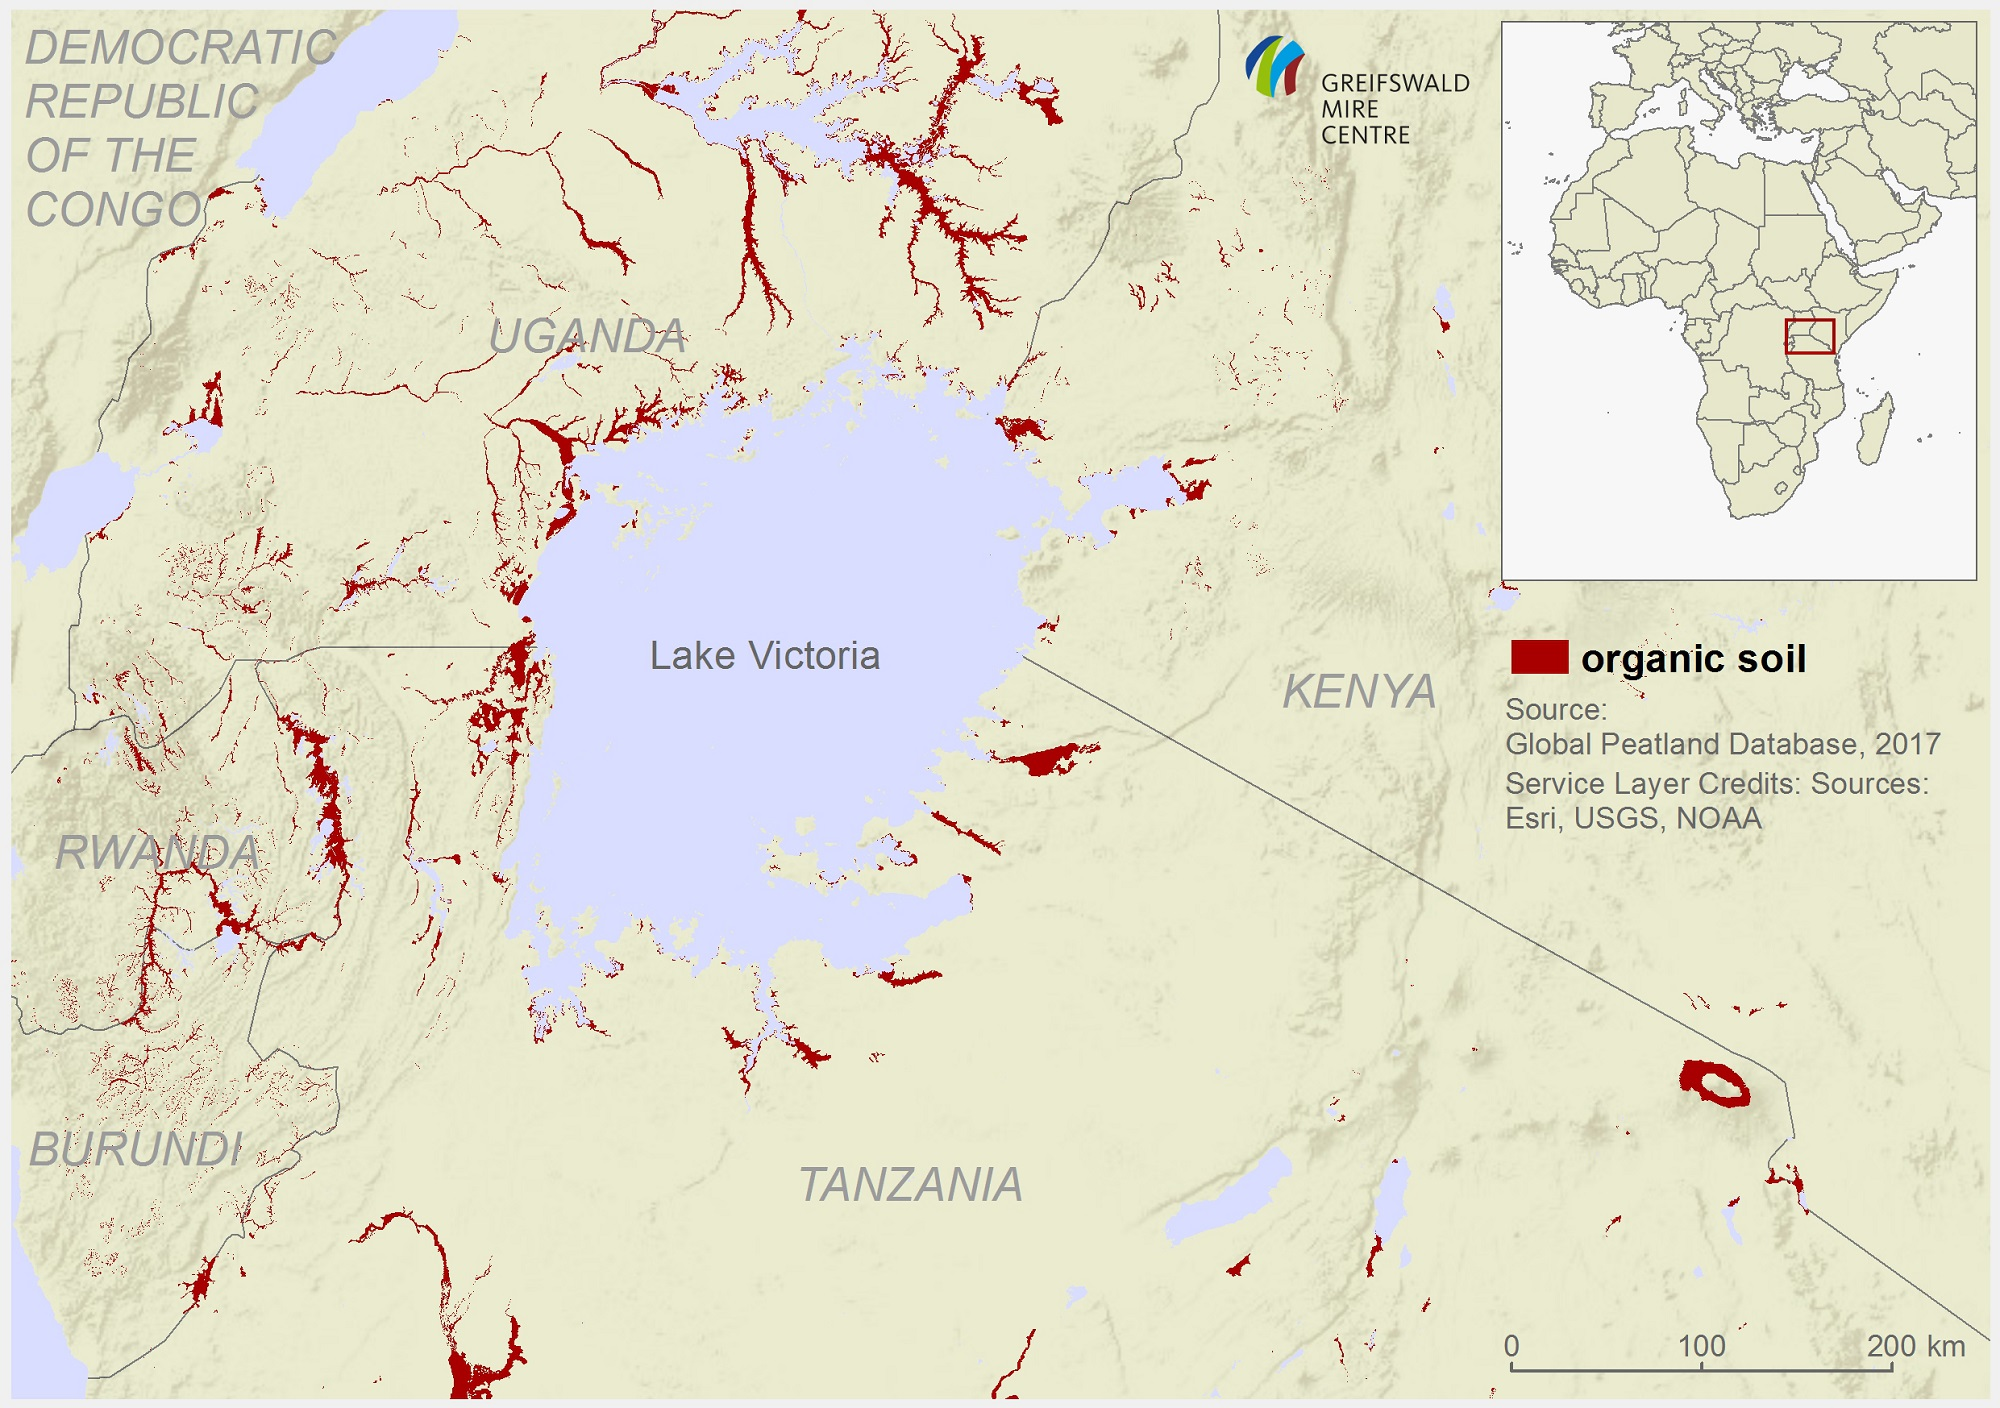 Organic soil probability map of the Lake Victoria region